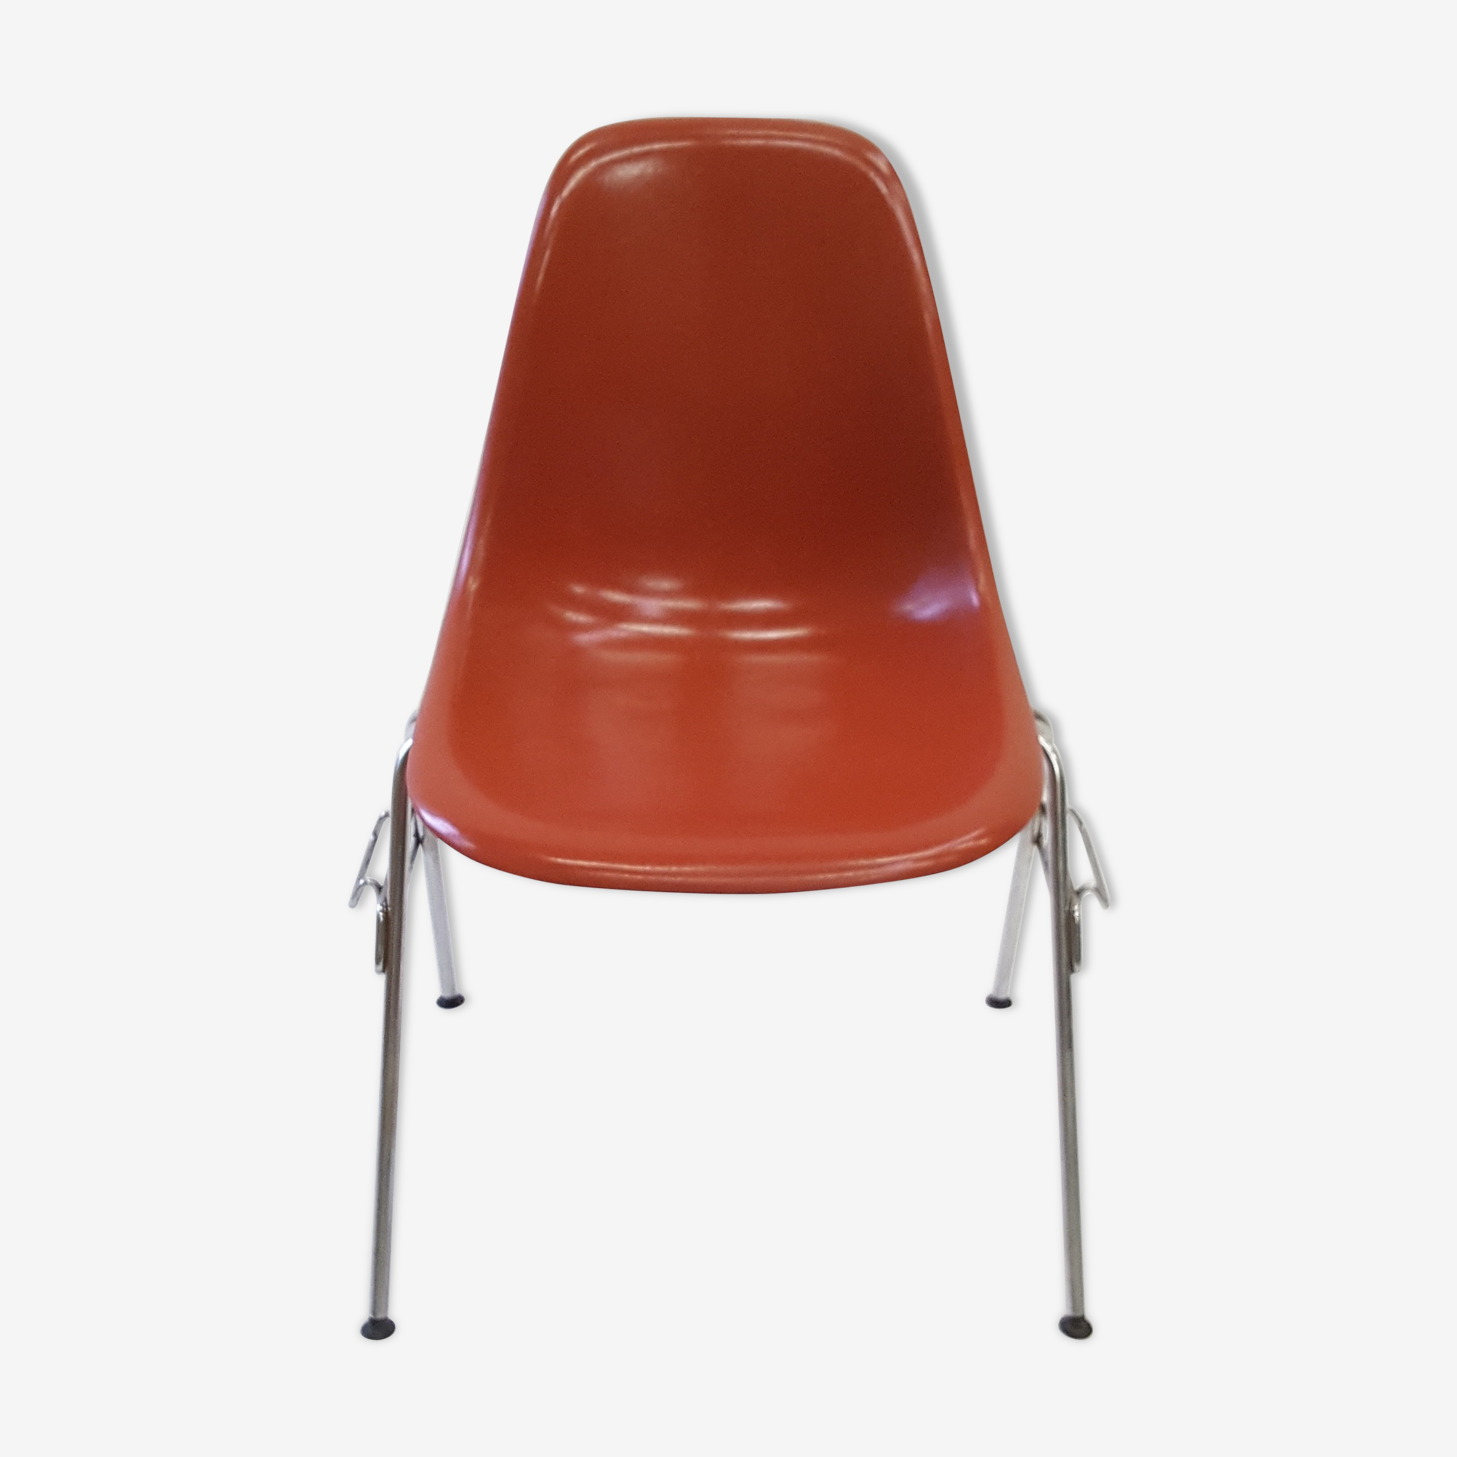 Eames DSS chair for Herman Miller